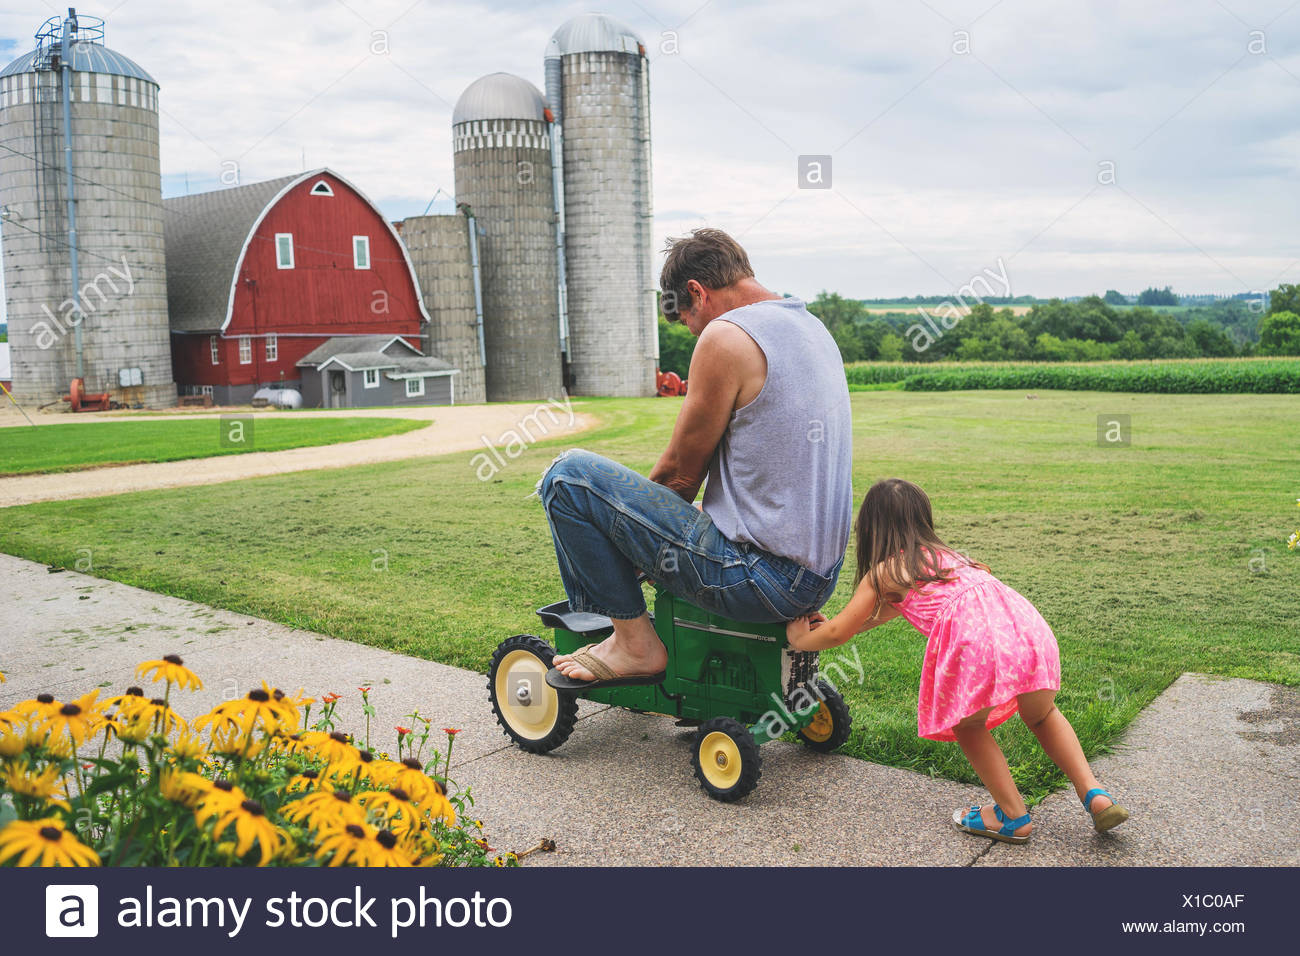 Girl pushing her father on a toy tractor - Stock Image